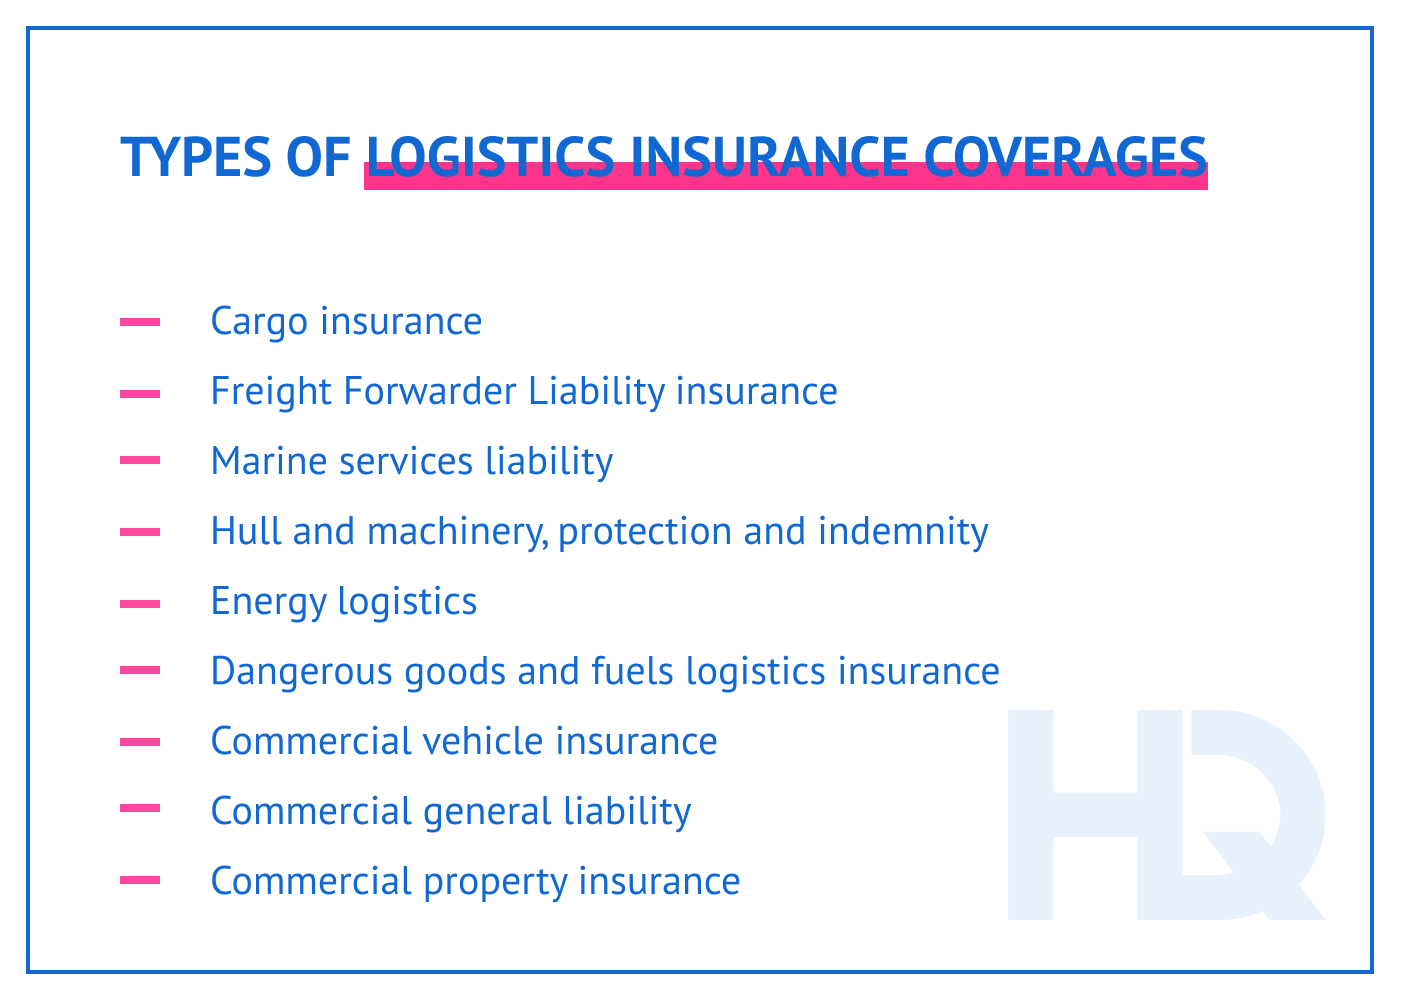 Types of logistics insurance coverages.